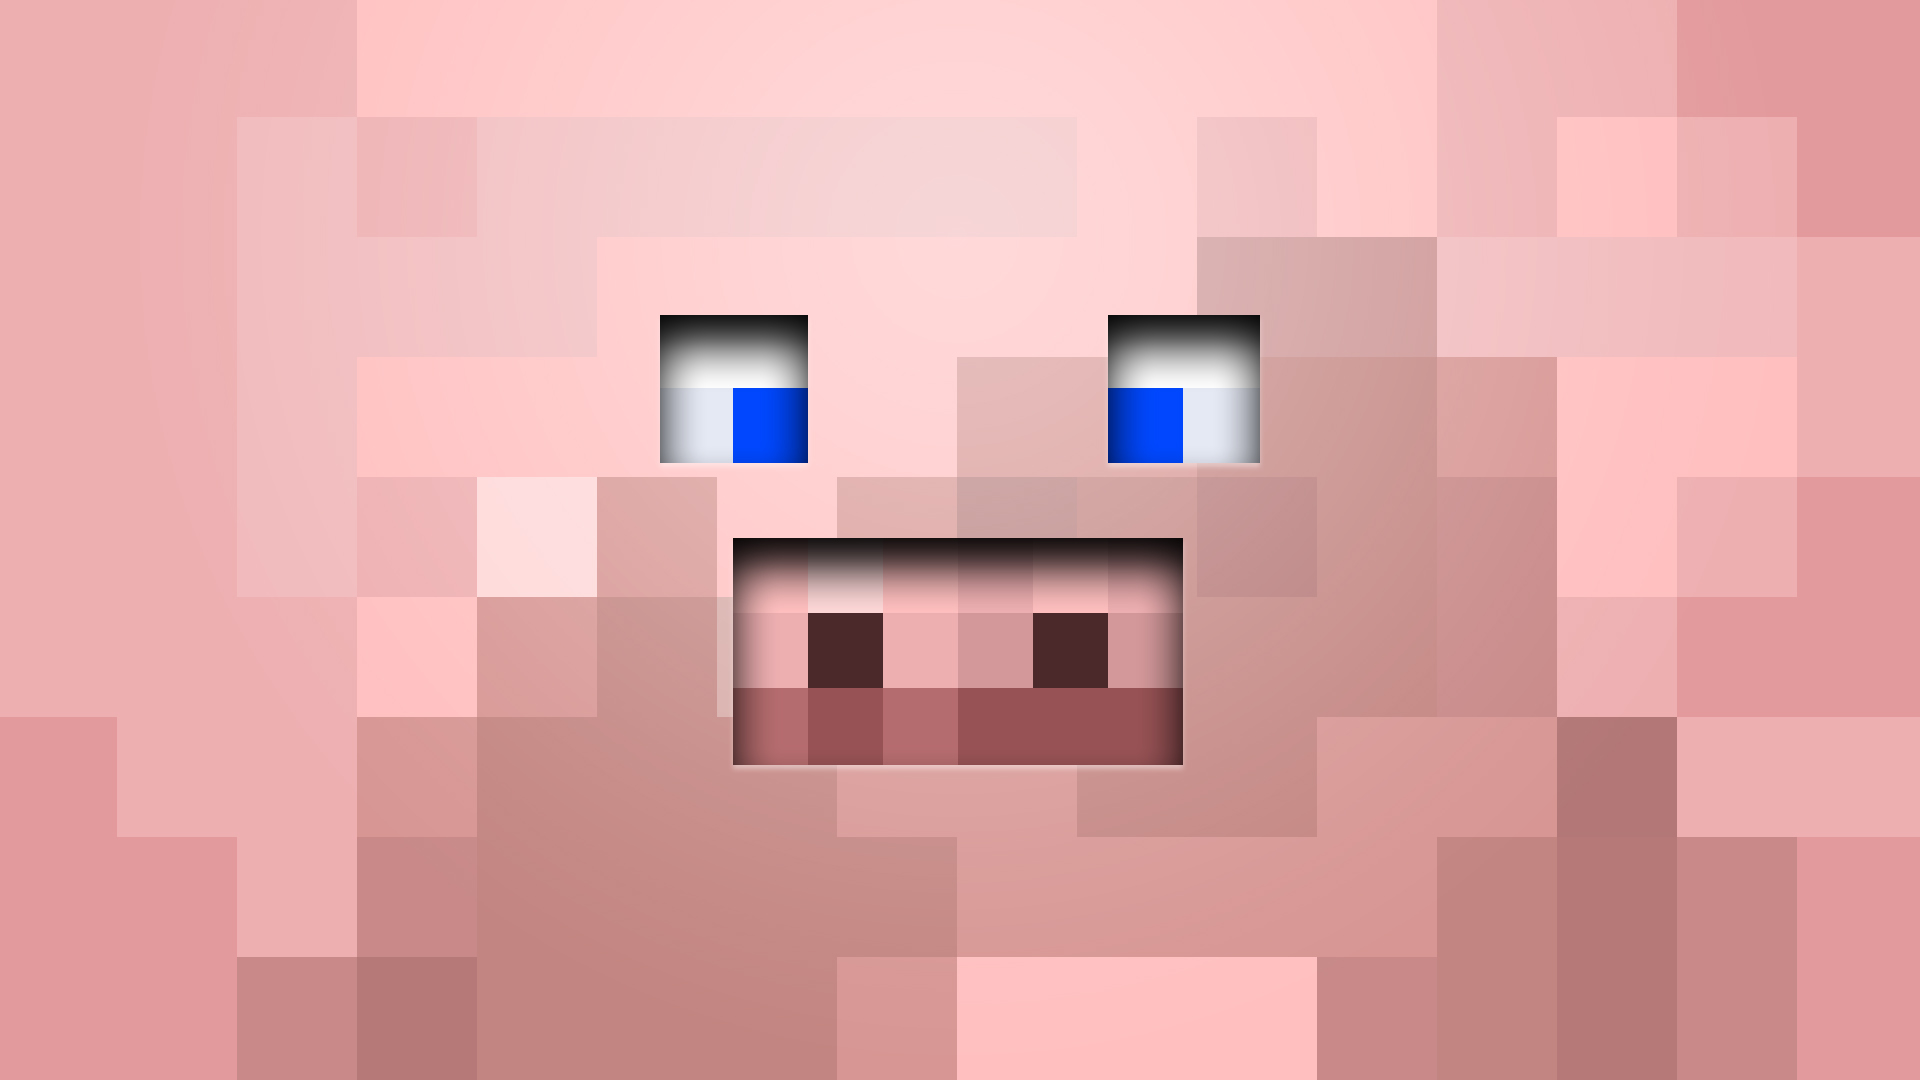 minecraft pig wallpapers, minecraft pig myspace backgrounds, minecraft